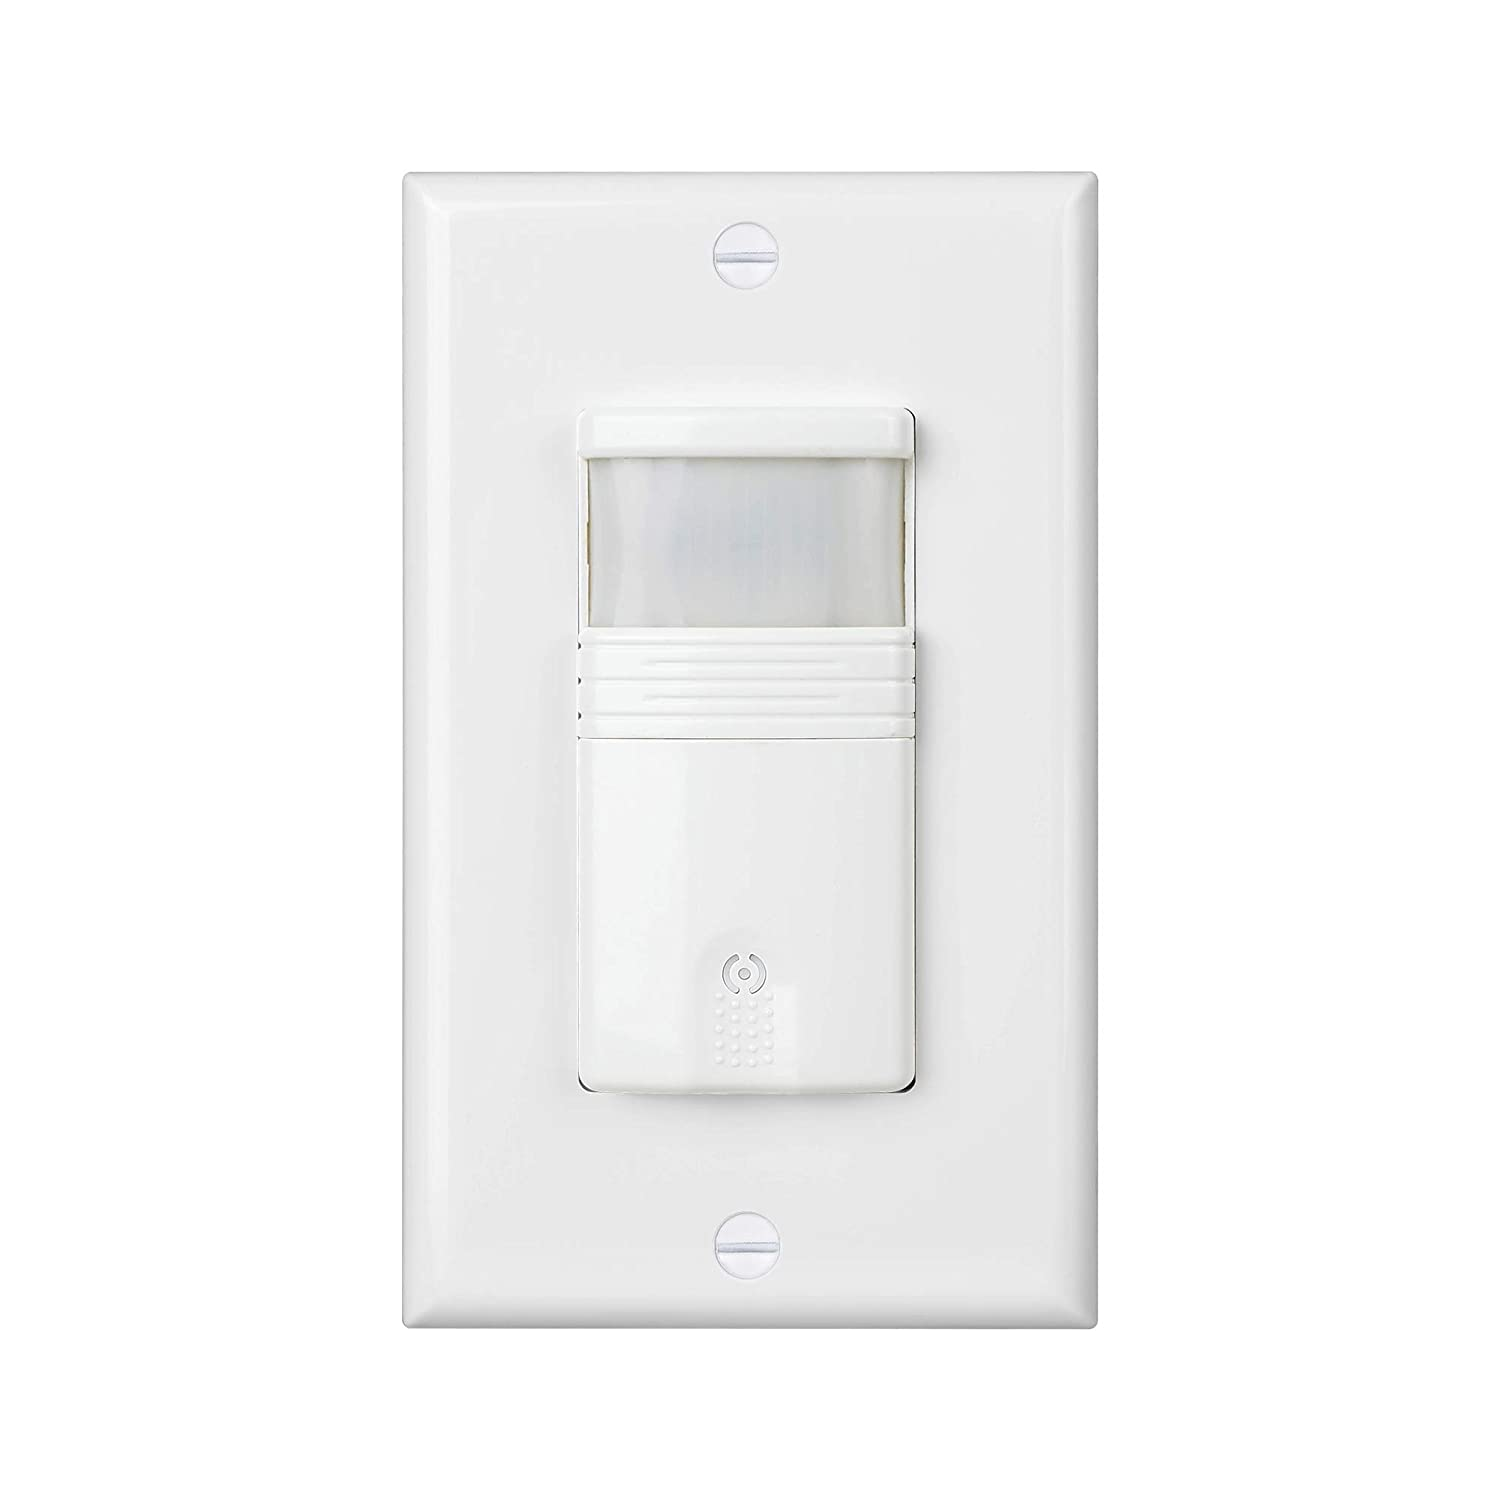 (Pack of 1) White 3-Way Motion Sensor Light Switch (Not Single Pole) – NEUTRAL Wire Required – For Indoor Use – Vacancy & Occupancy Modes – Title 24, UL Certified – Adjustable Timer 61D5s5pWrlL